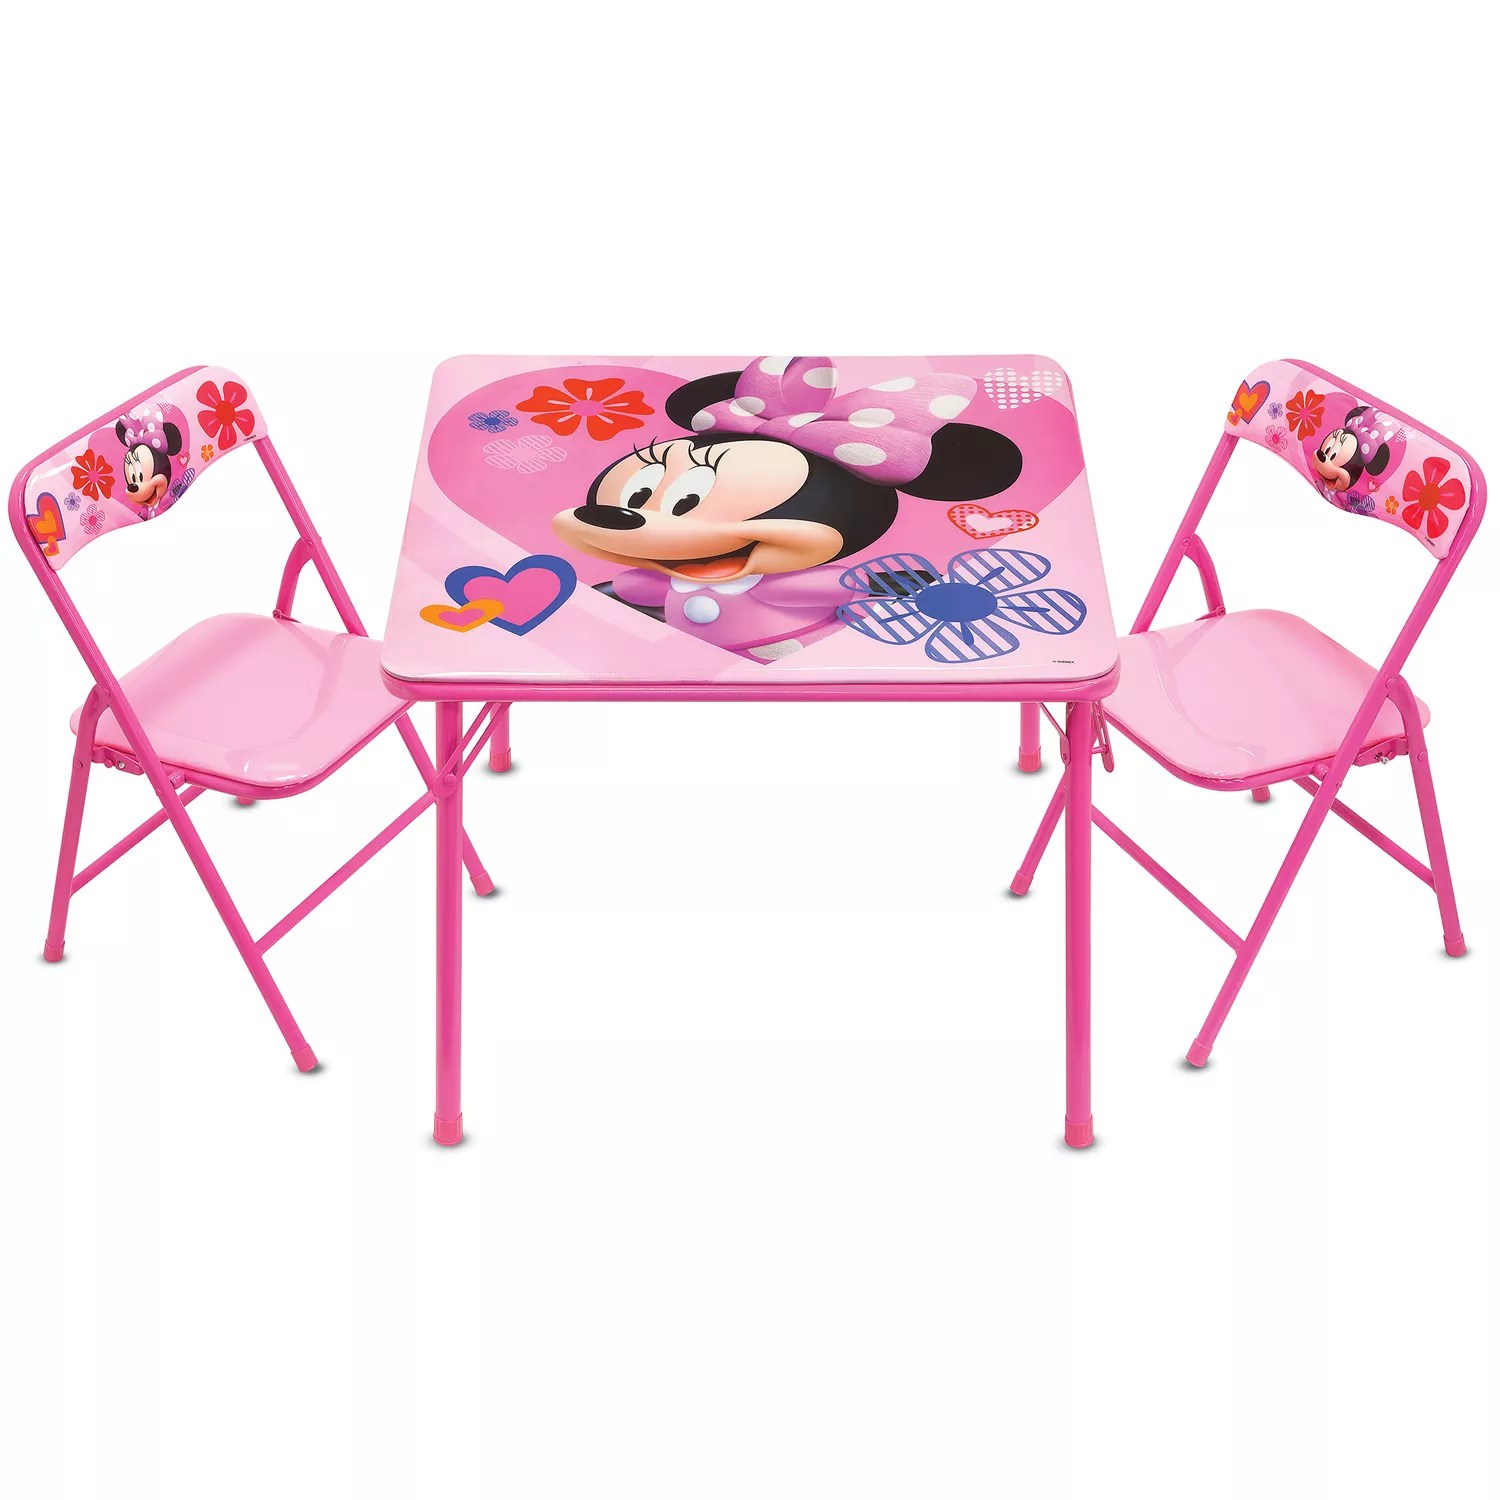 minnie table and chairs zaisu floor chair disney s mouse activity set